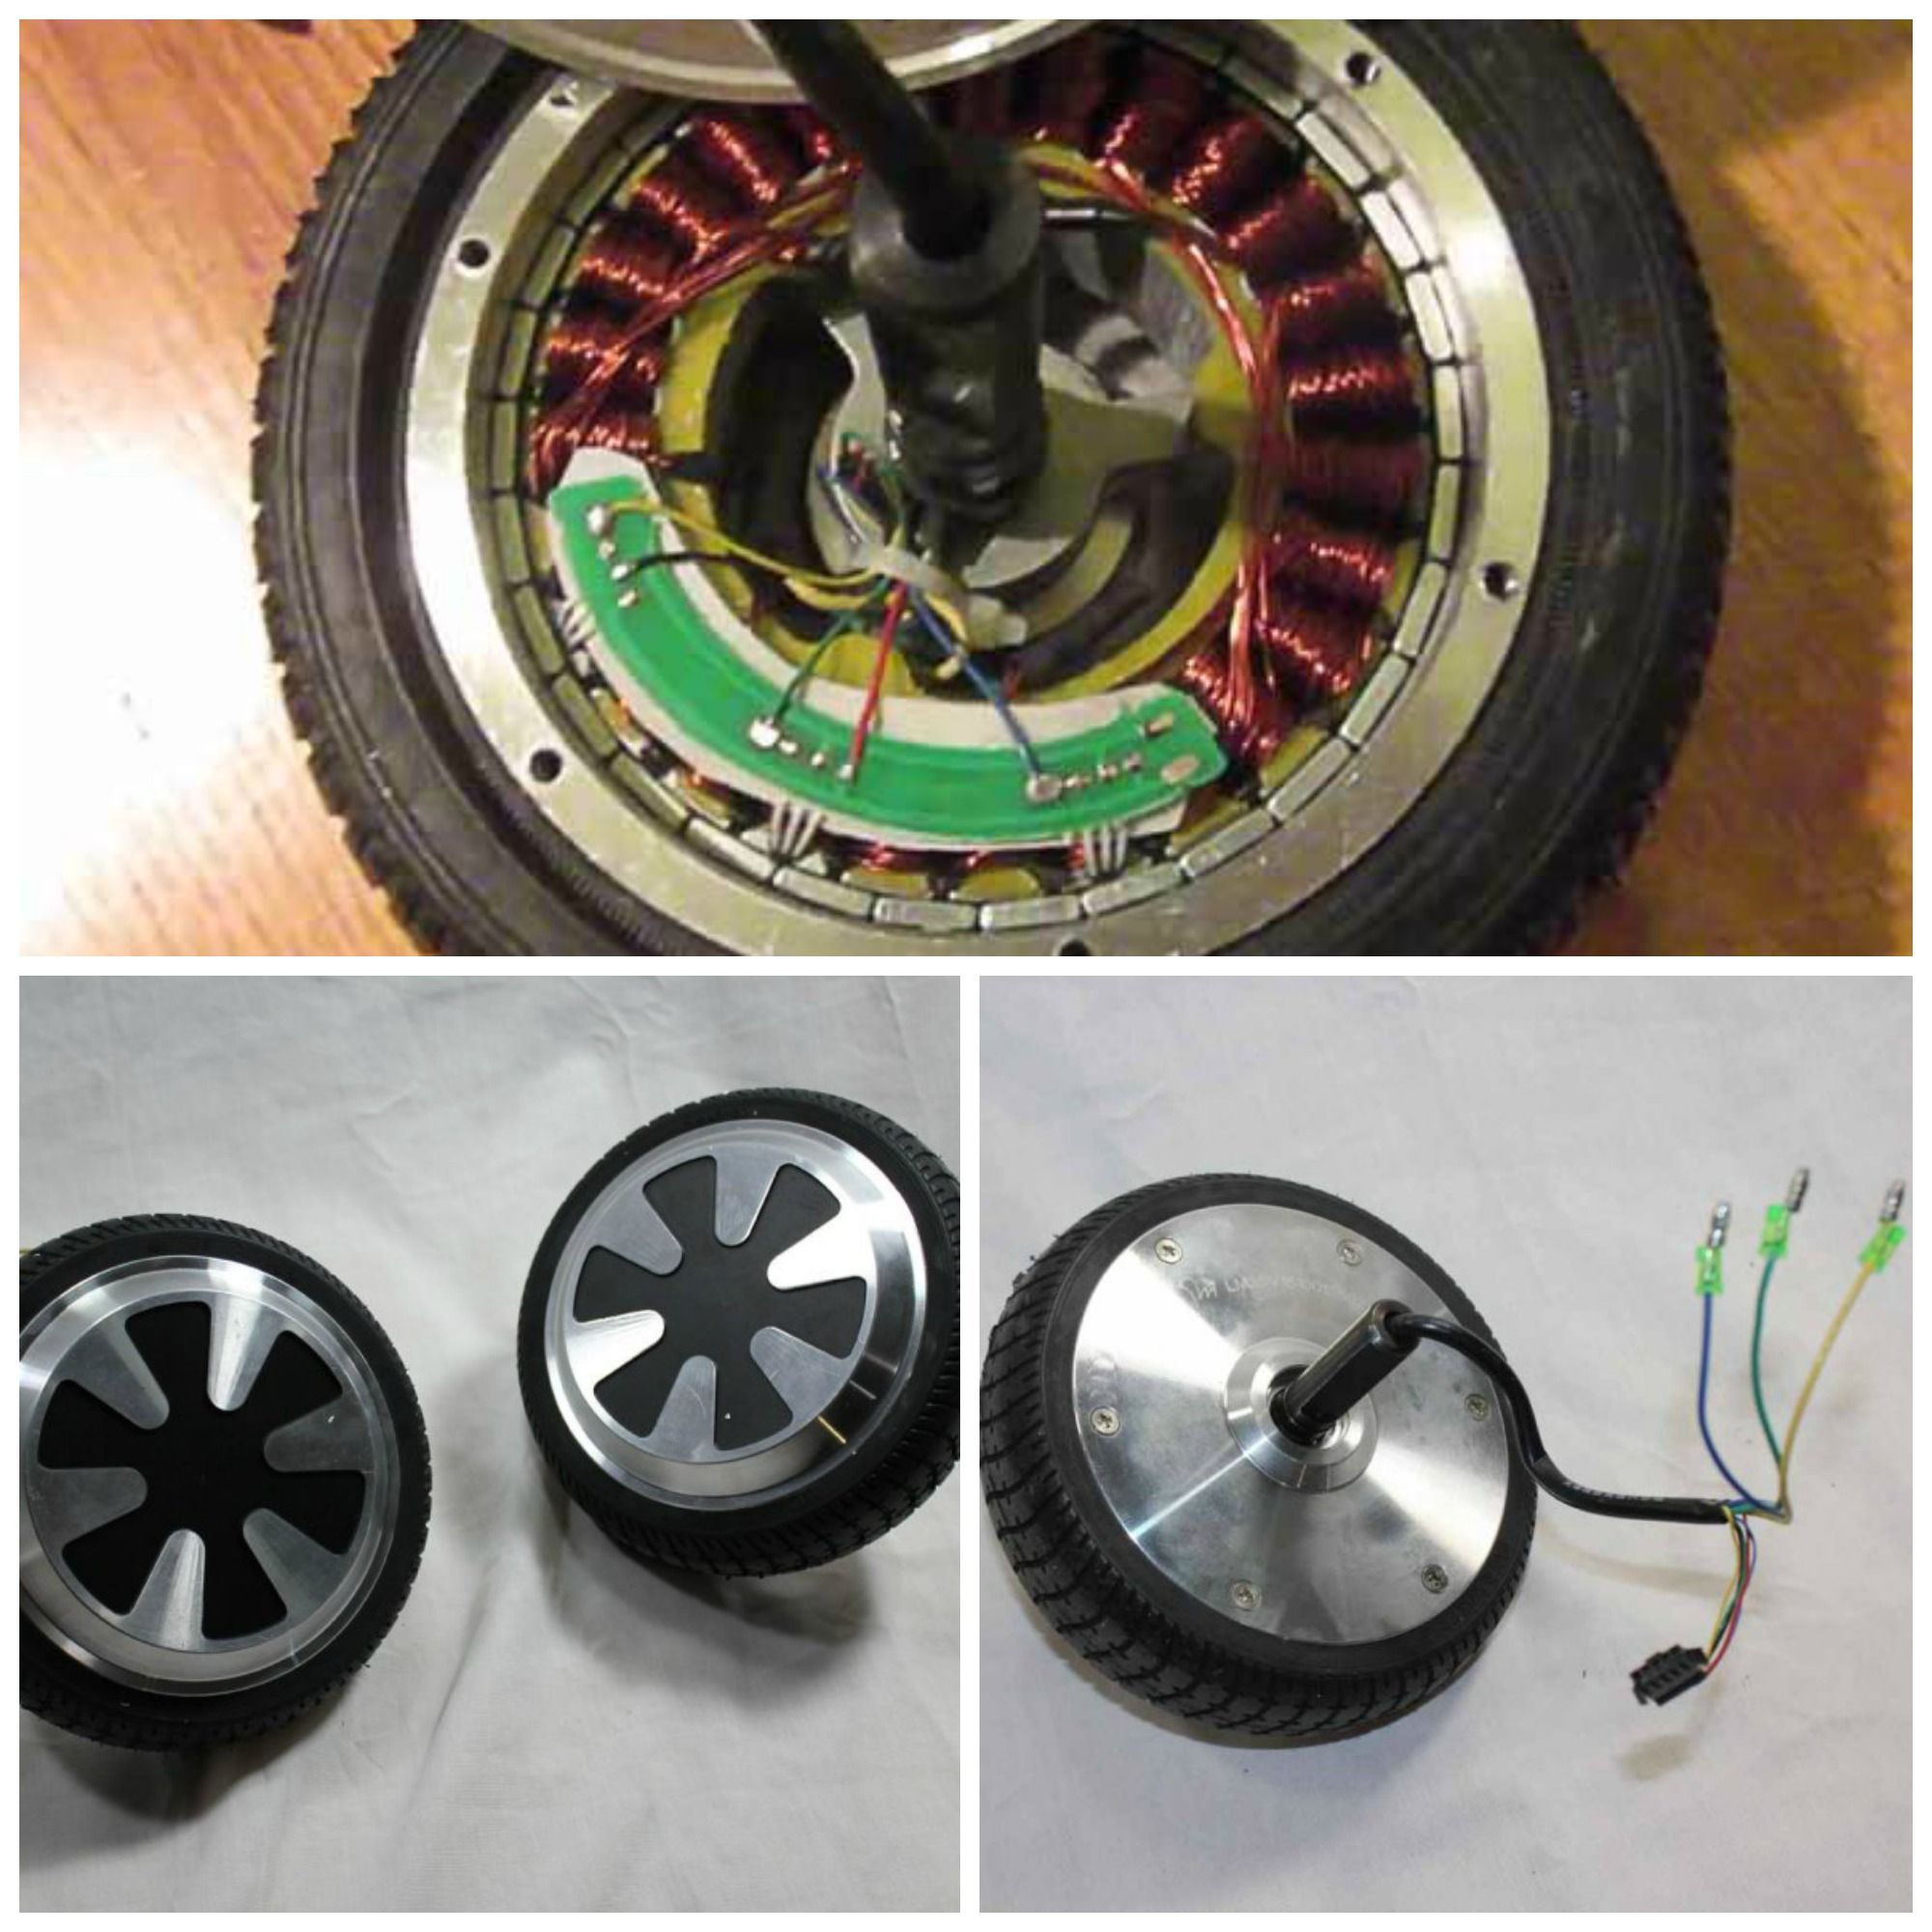 The Motors Of A Hoverboard Are Inside The Wheels Which Eliminates Many Of The Mechanical Power Transmission Pr In 2021 Hoverboard Mechanical Power Electric Motorcycle